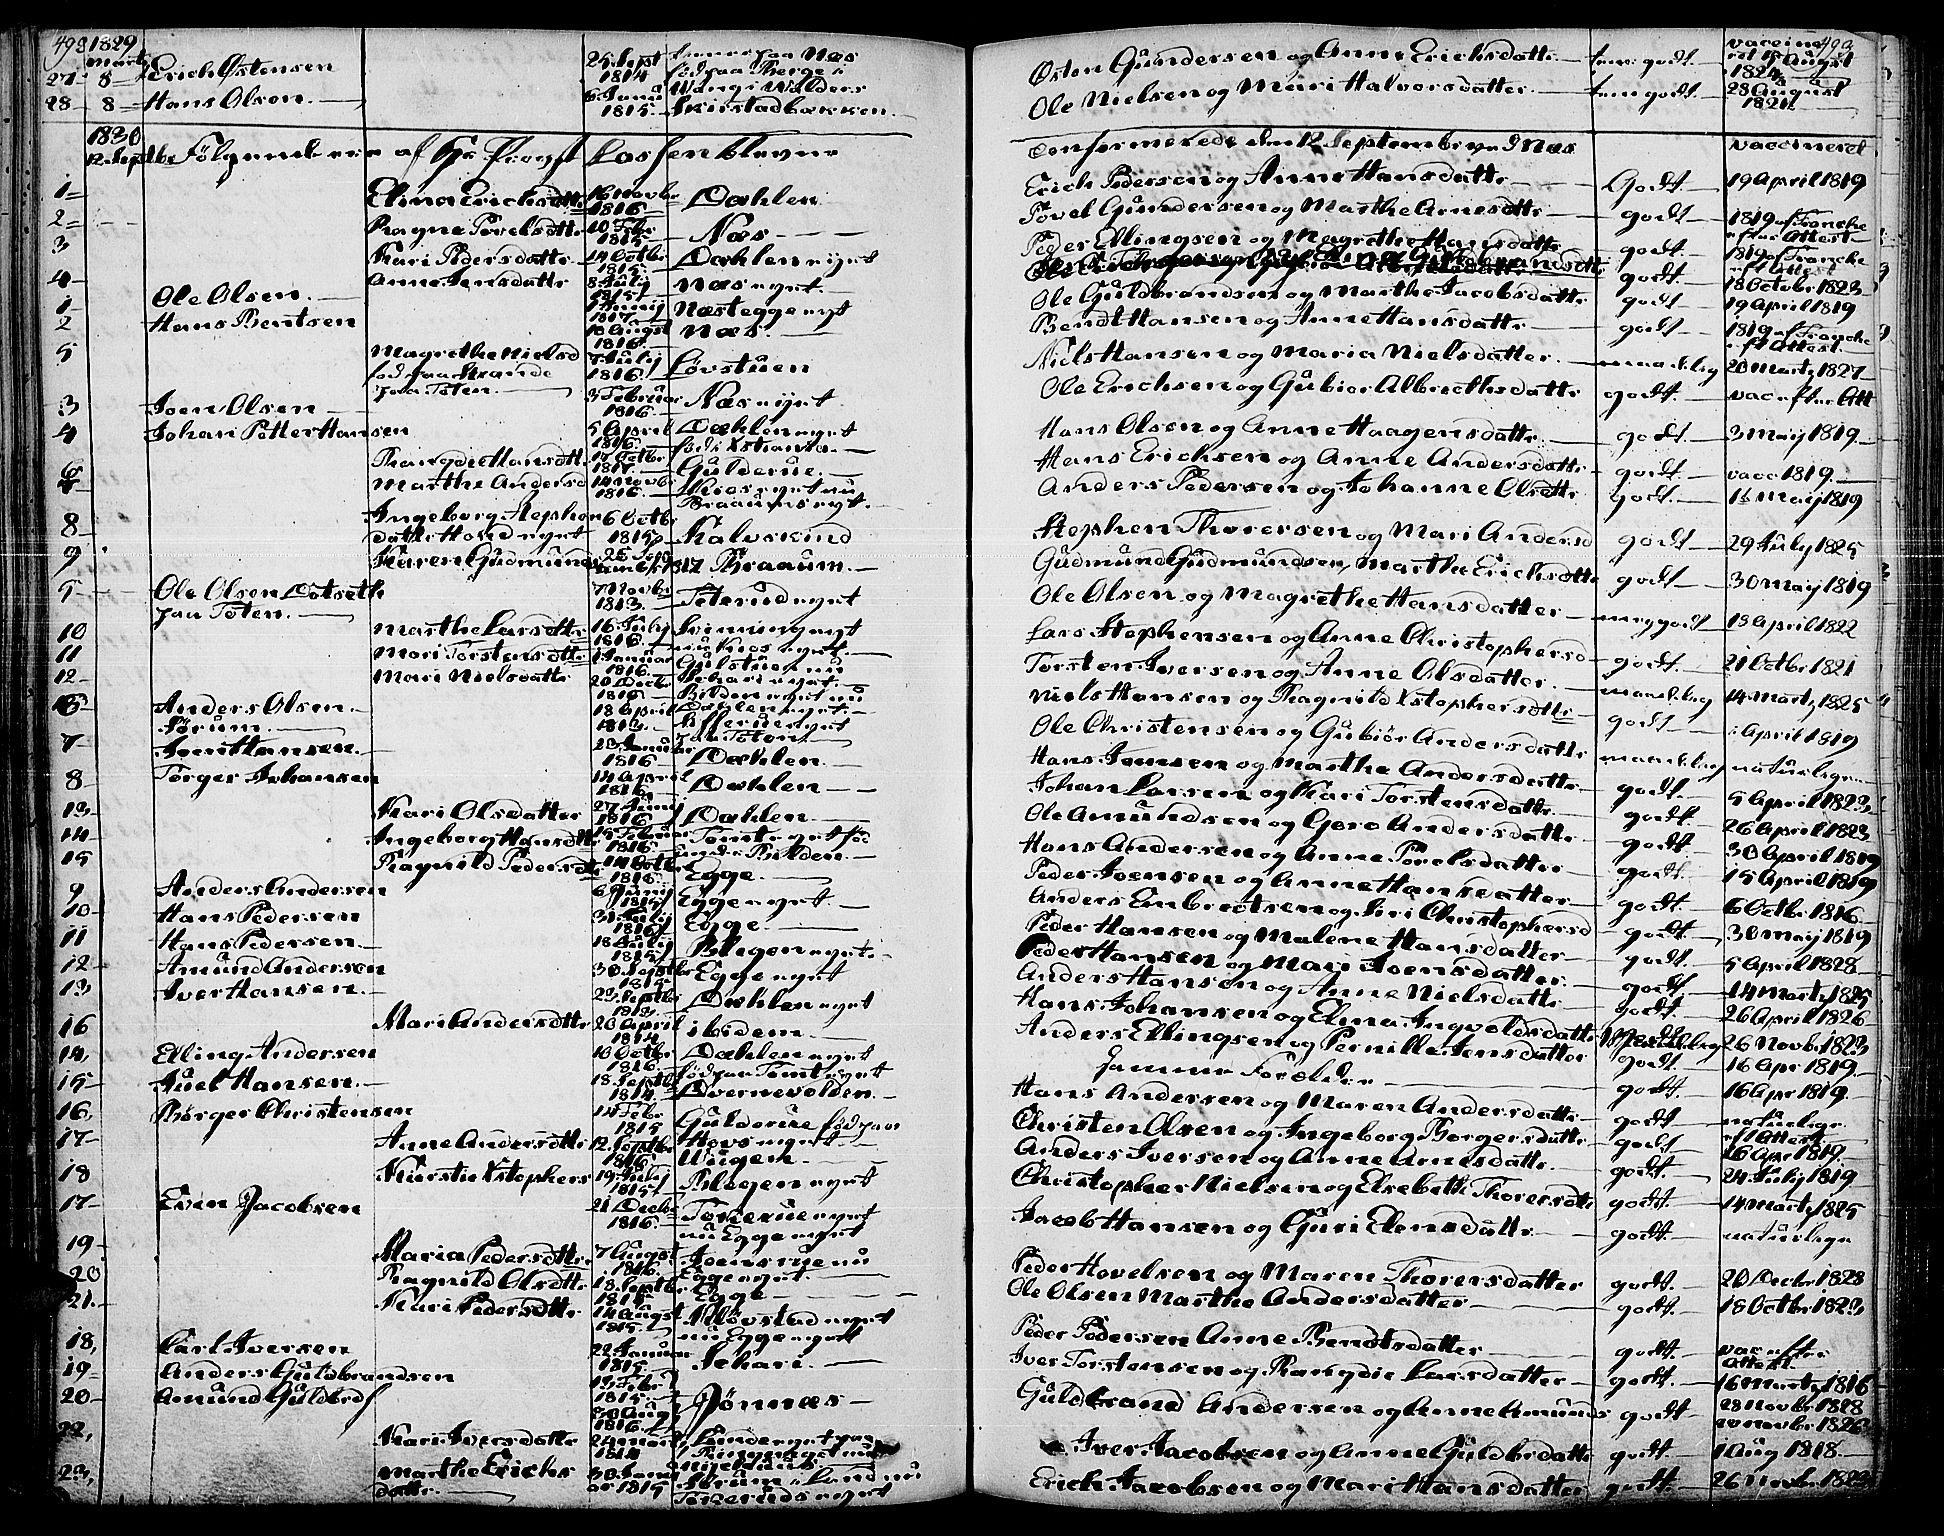 SAH, Gran prestekontor, Parish register (official) no. 10, 1824-1842, p. 492-493